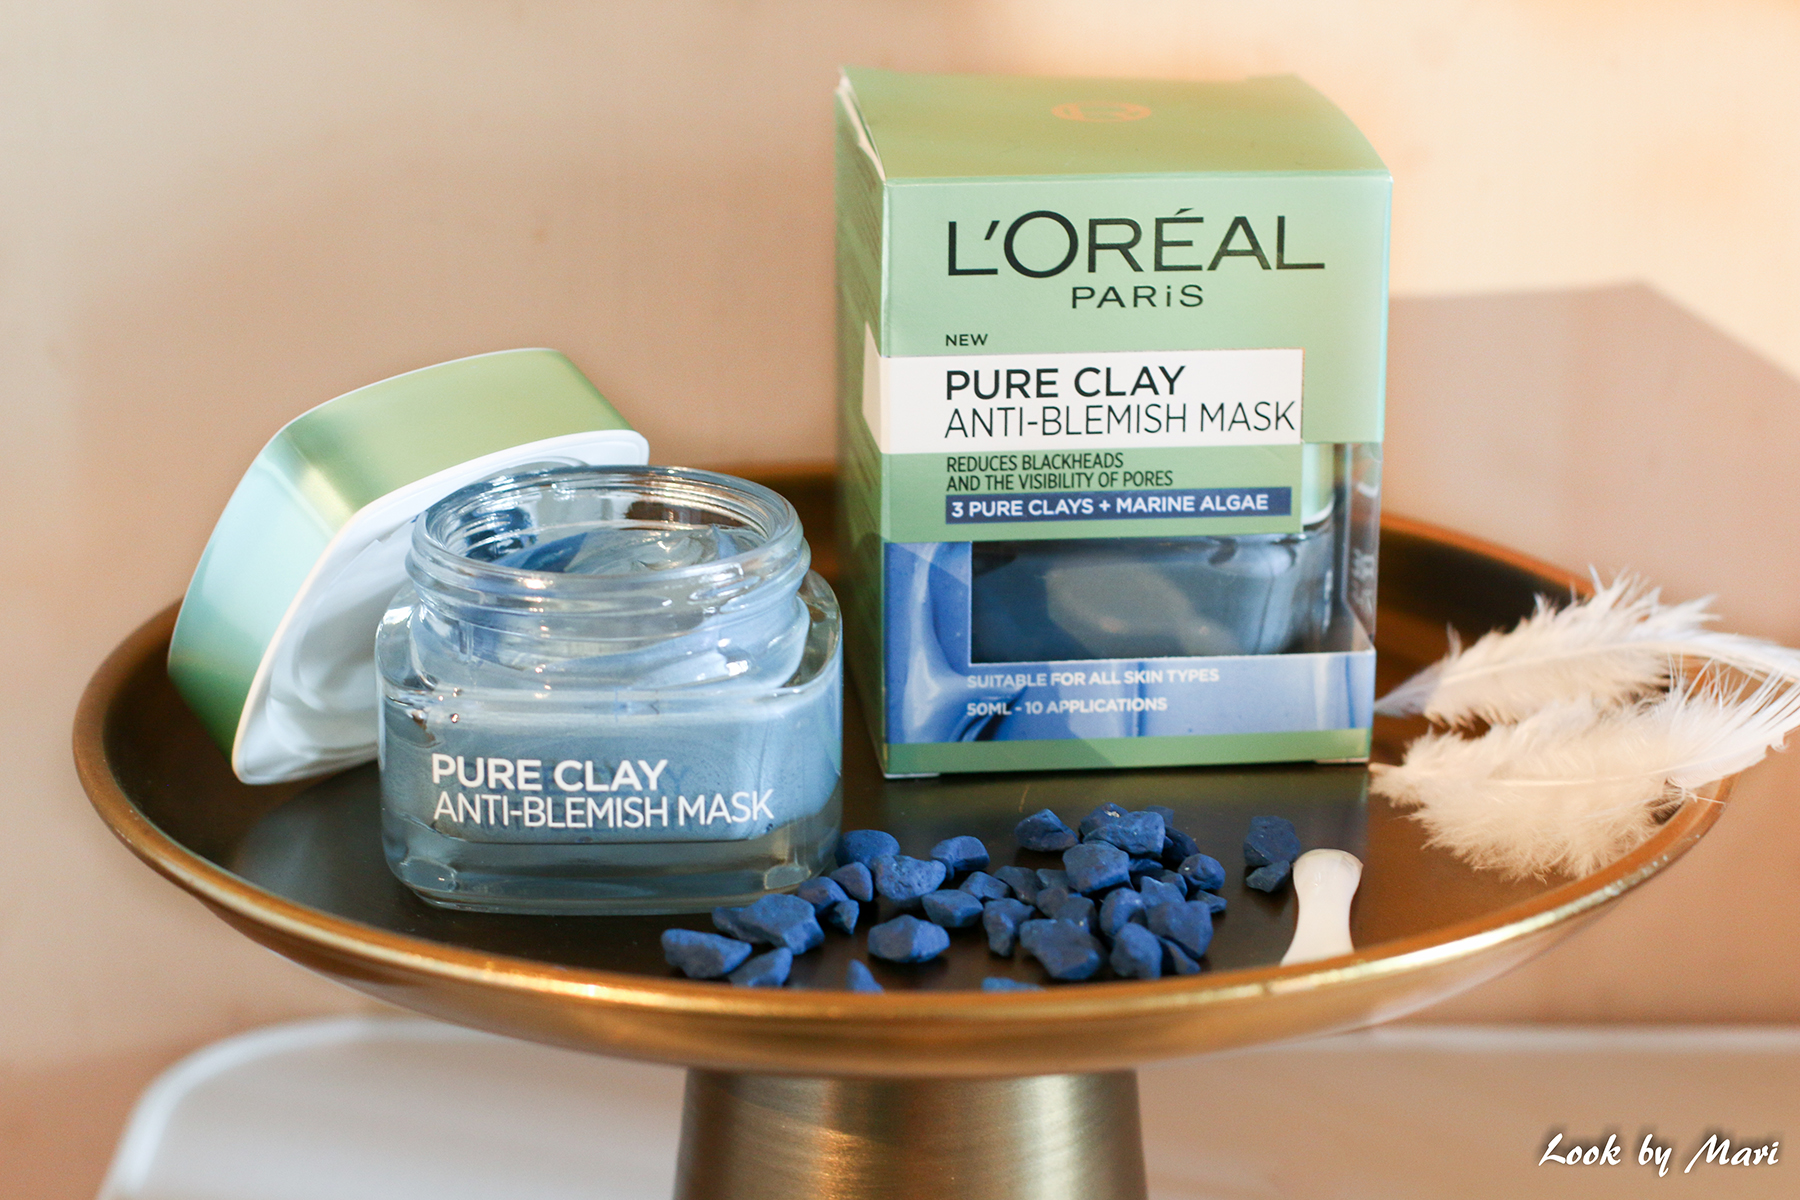 12 loreal pure clay anti-blemish mask review